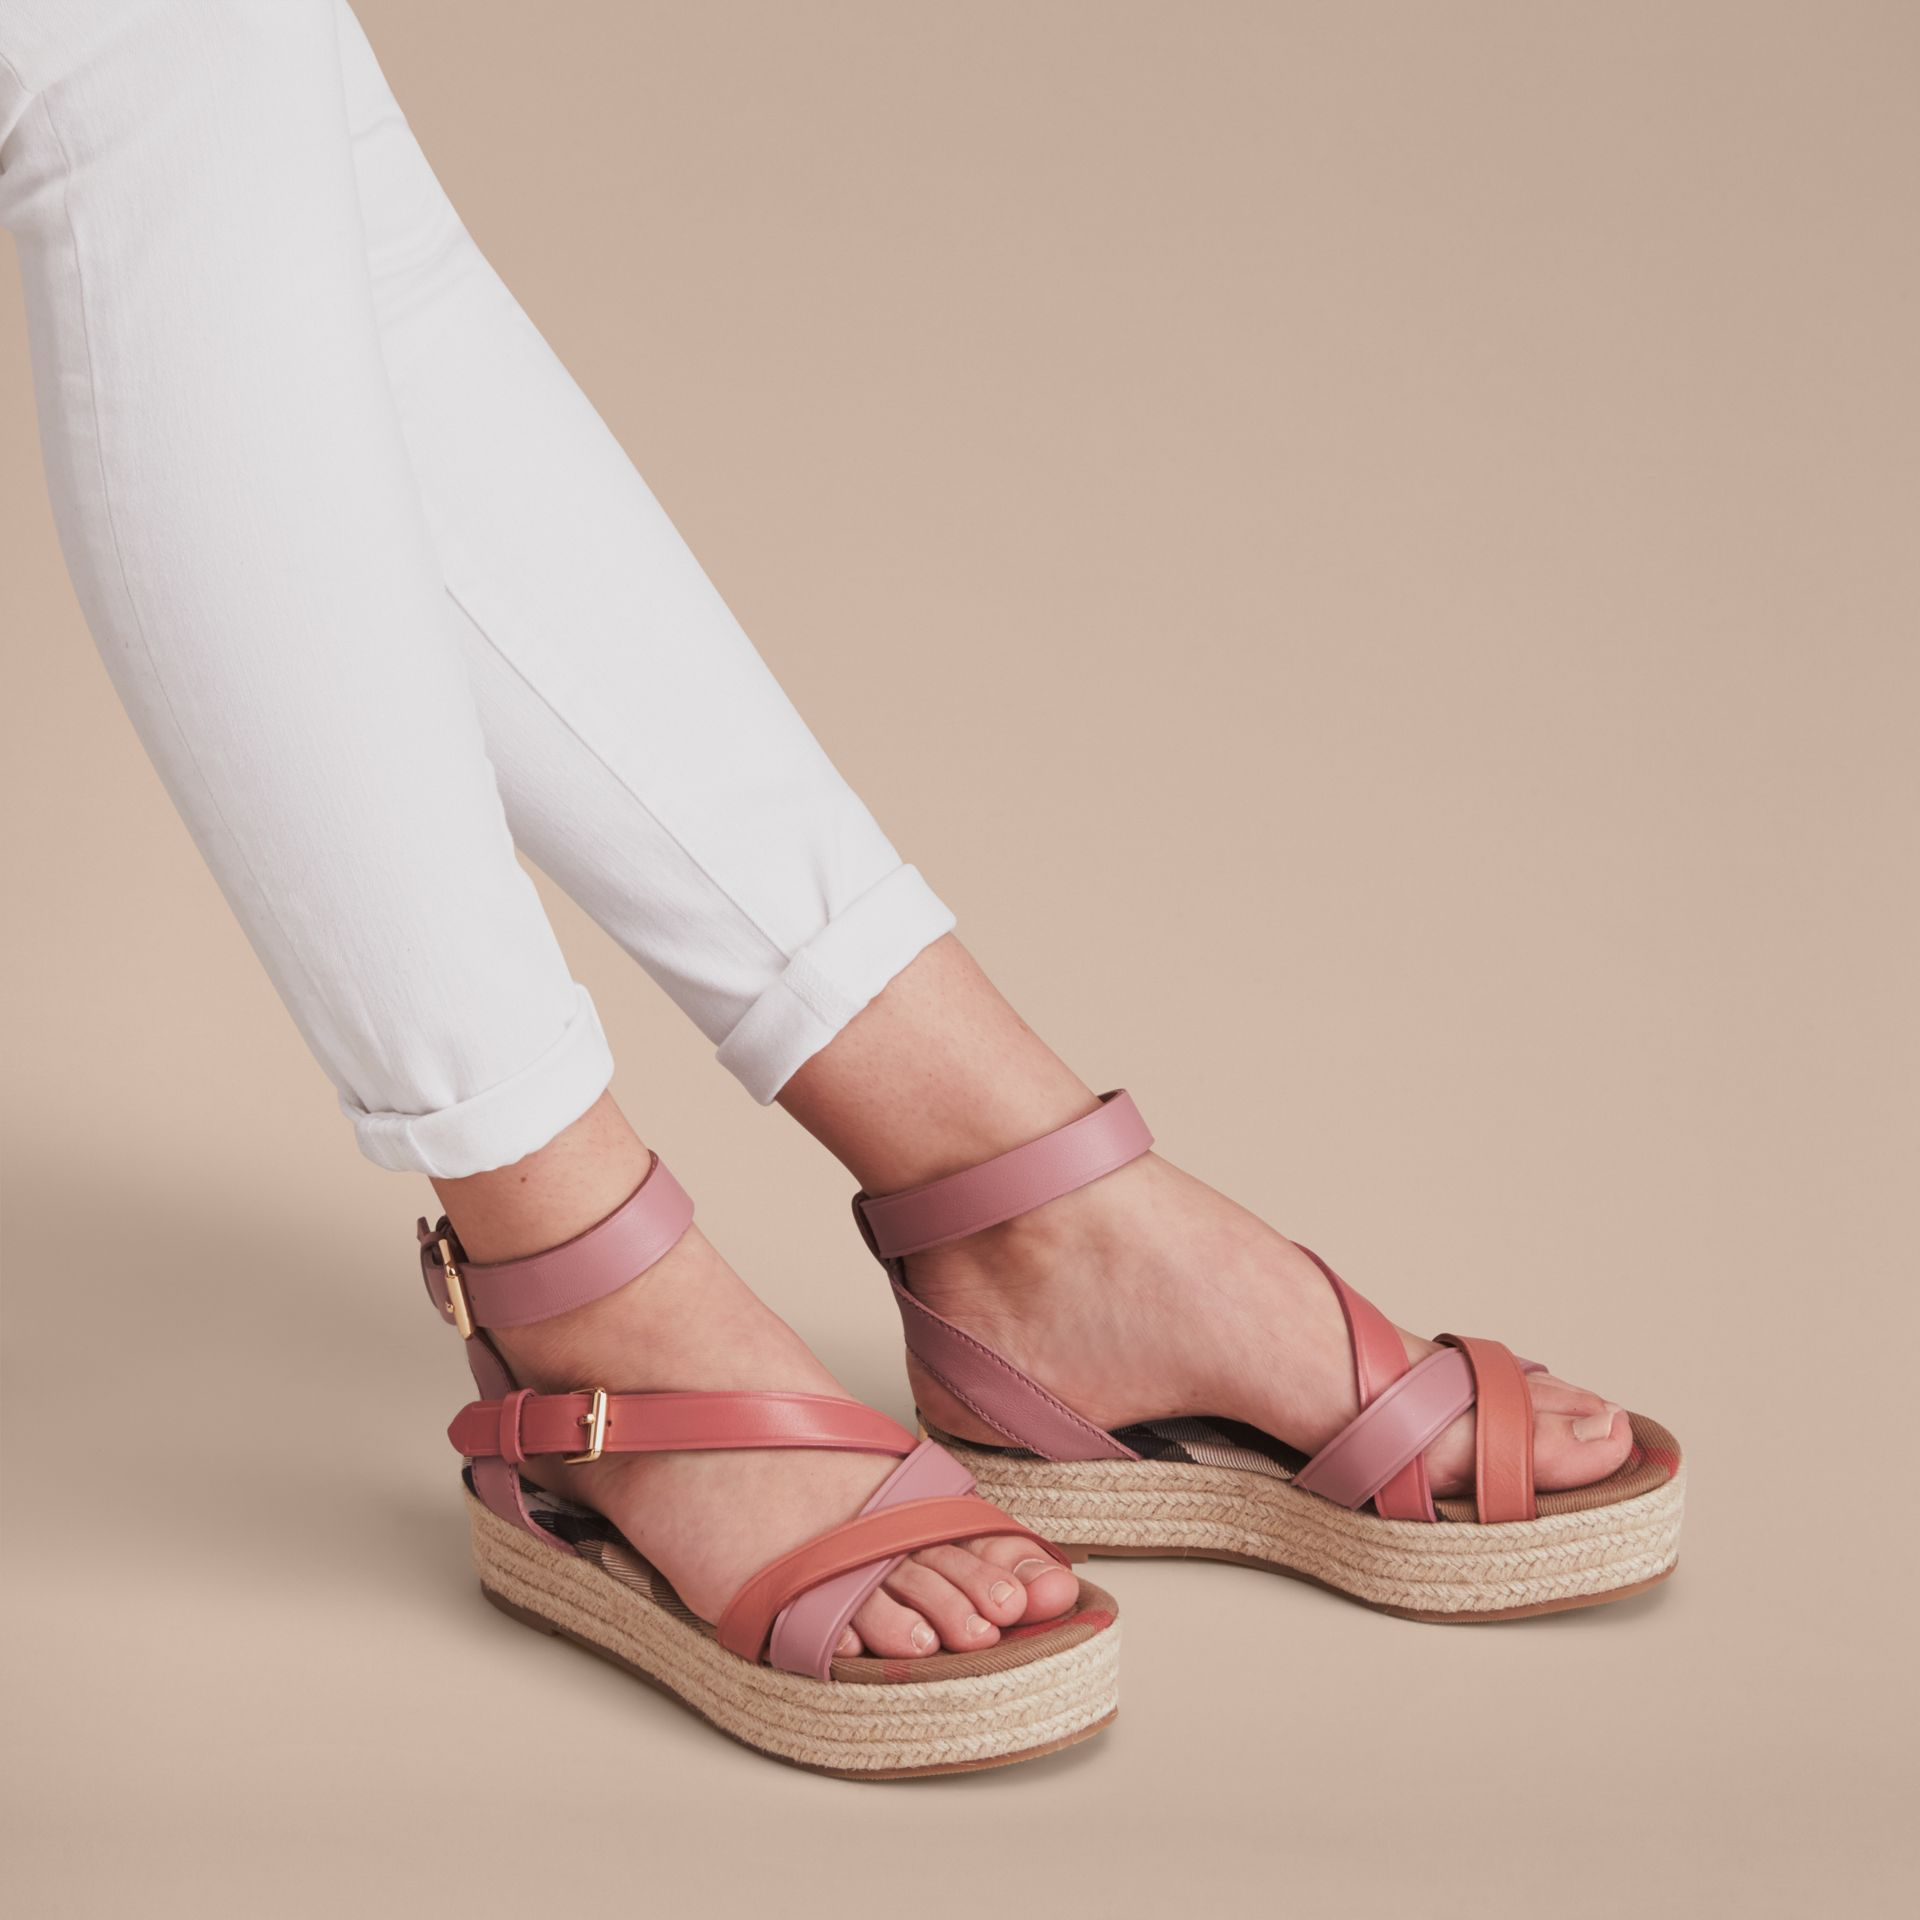 Two-tone Leather Espadrille Sandals in Dusty Pink - Women | Burberry Australia - gallery image 3